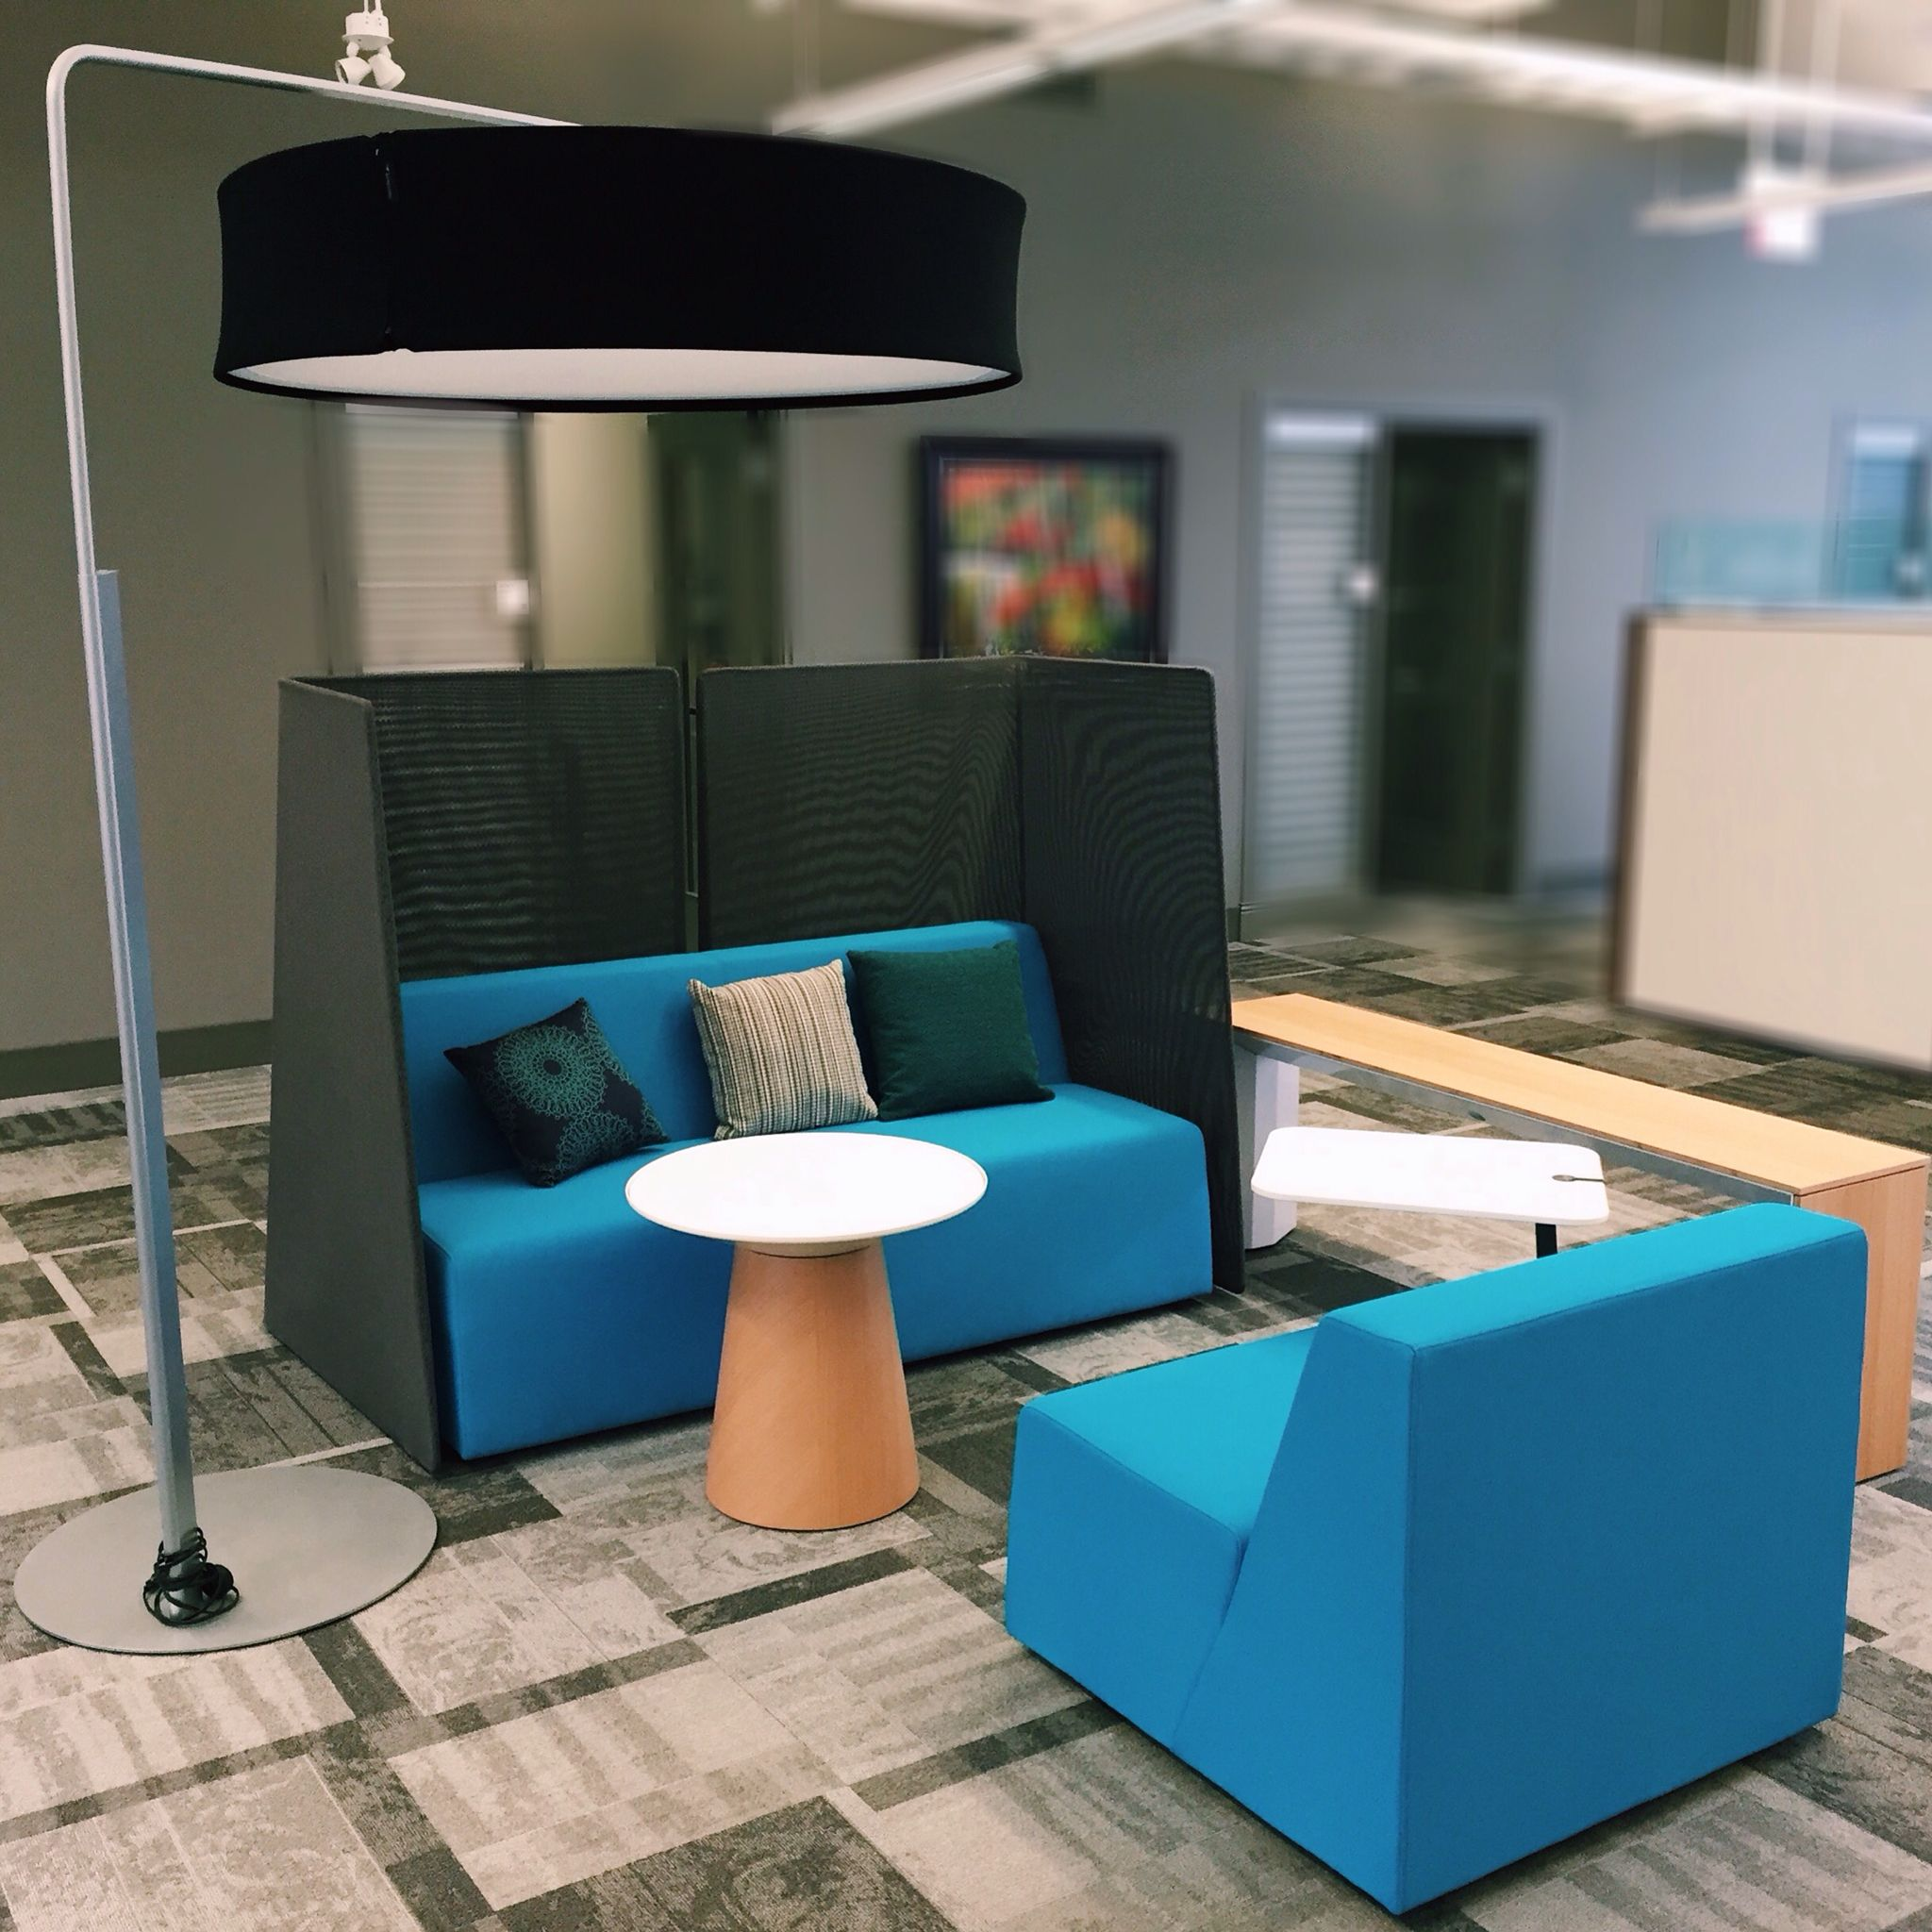 Dealership Storr fice Environments Products Campfire Big Lounge Campfire Paper Table Buoy Project Profile MANN HUMMEL Dealership